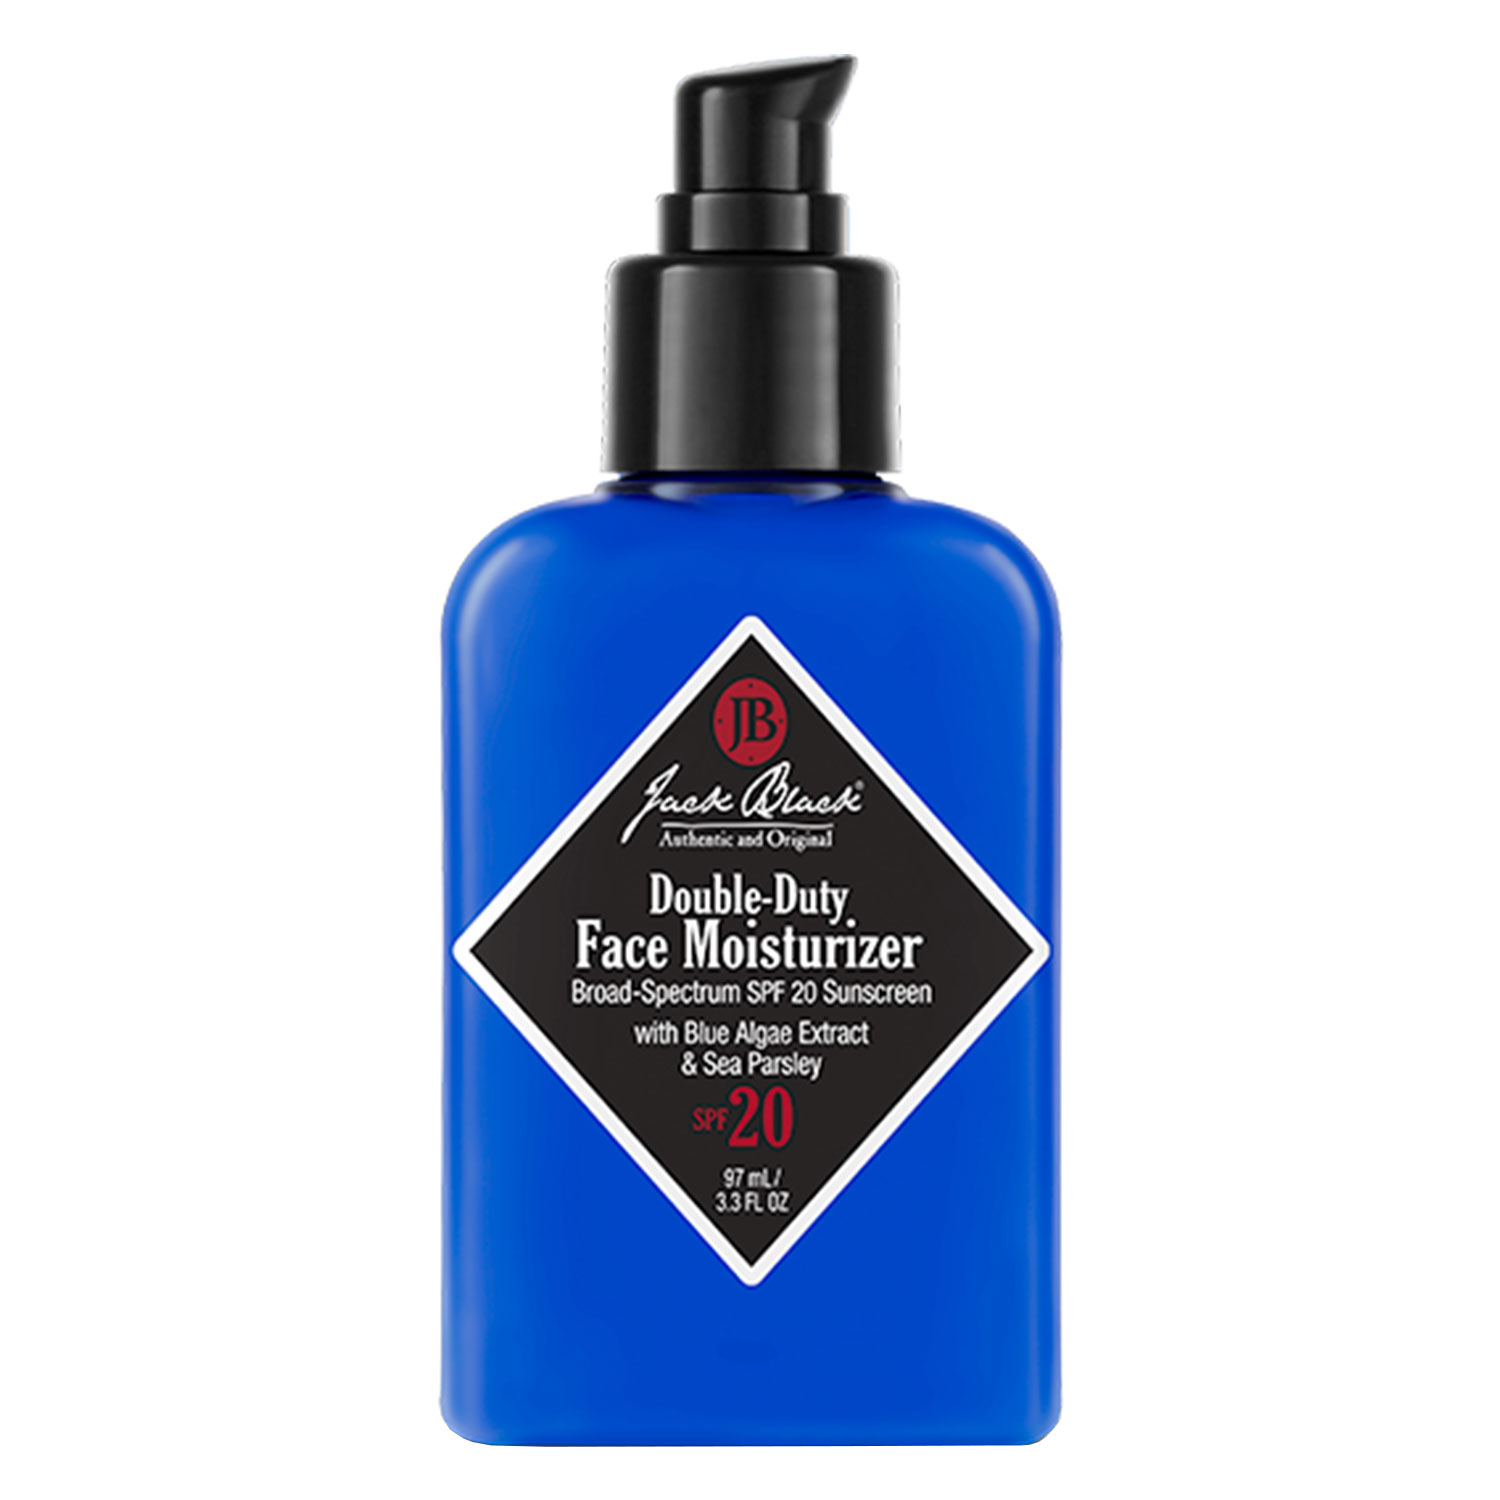 Jack Black - Double-Duty Face Moisturizer SPF 20